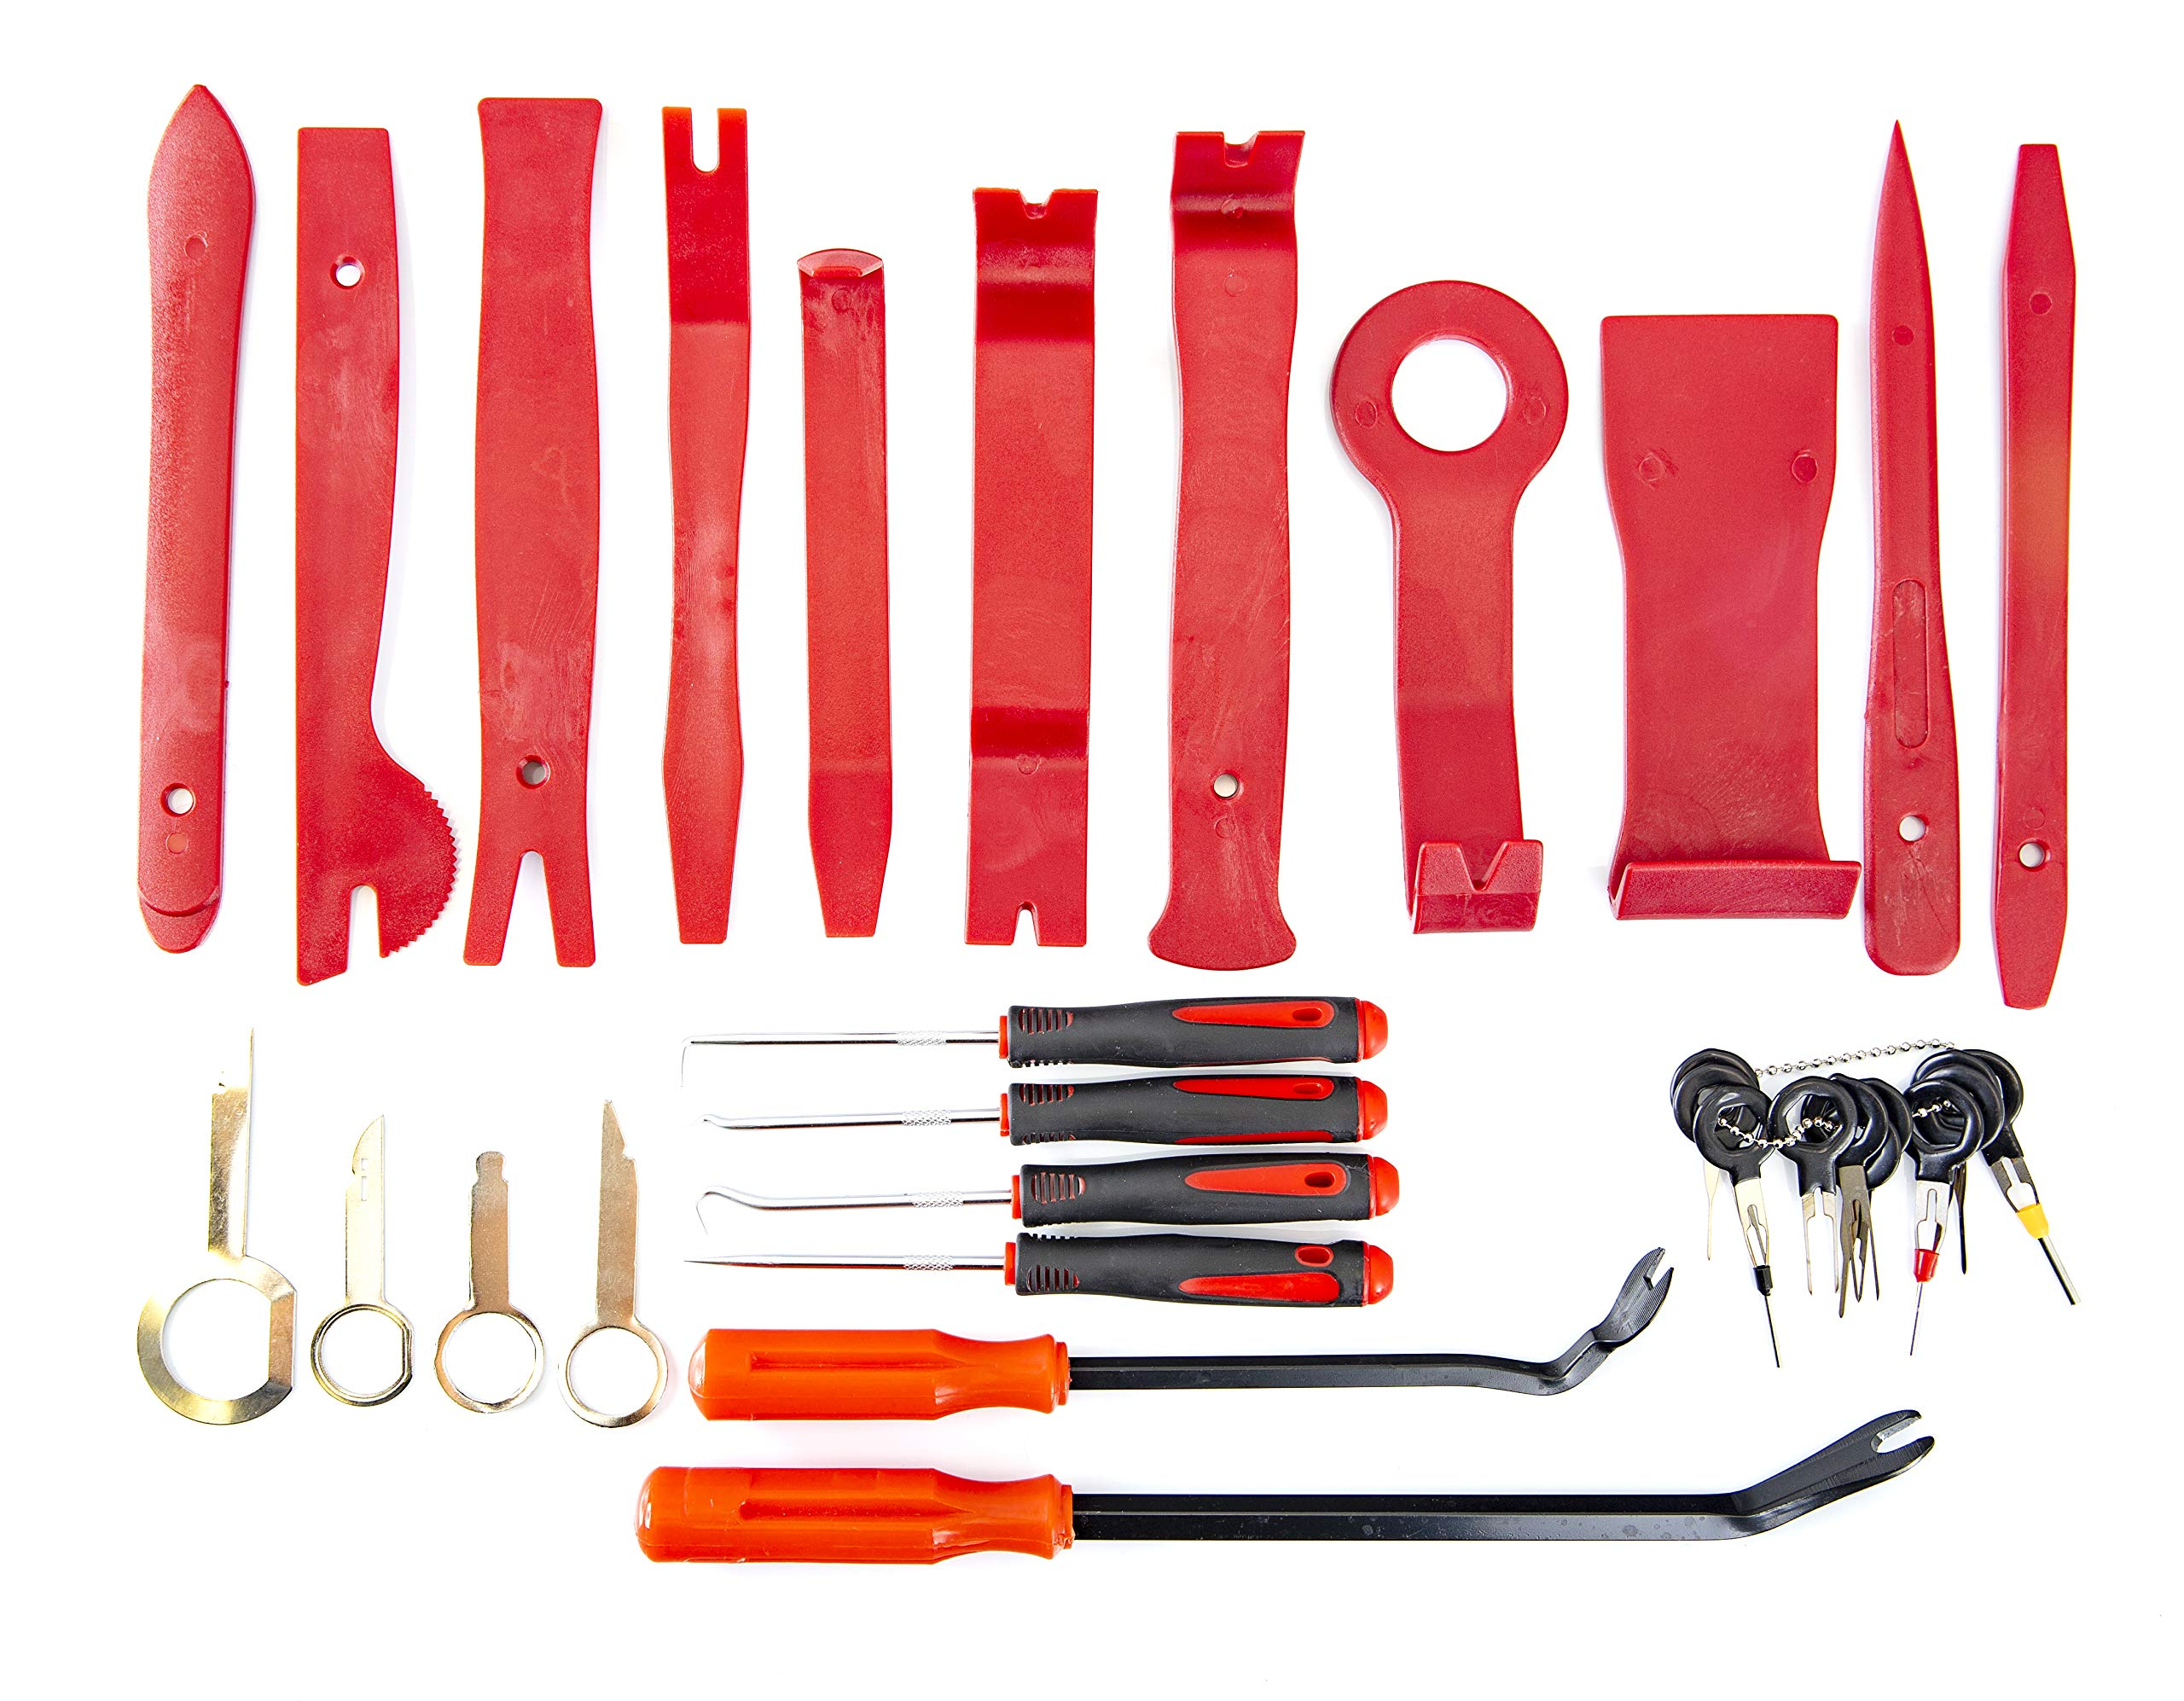 Fstop Labs 32 Pieces Auto Upholstery Trim and Molding Removal Tool Kit, Car Dash Panel Removal and Install Kit with Storage Bag by Fstop Labs (Image #2)